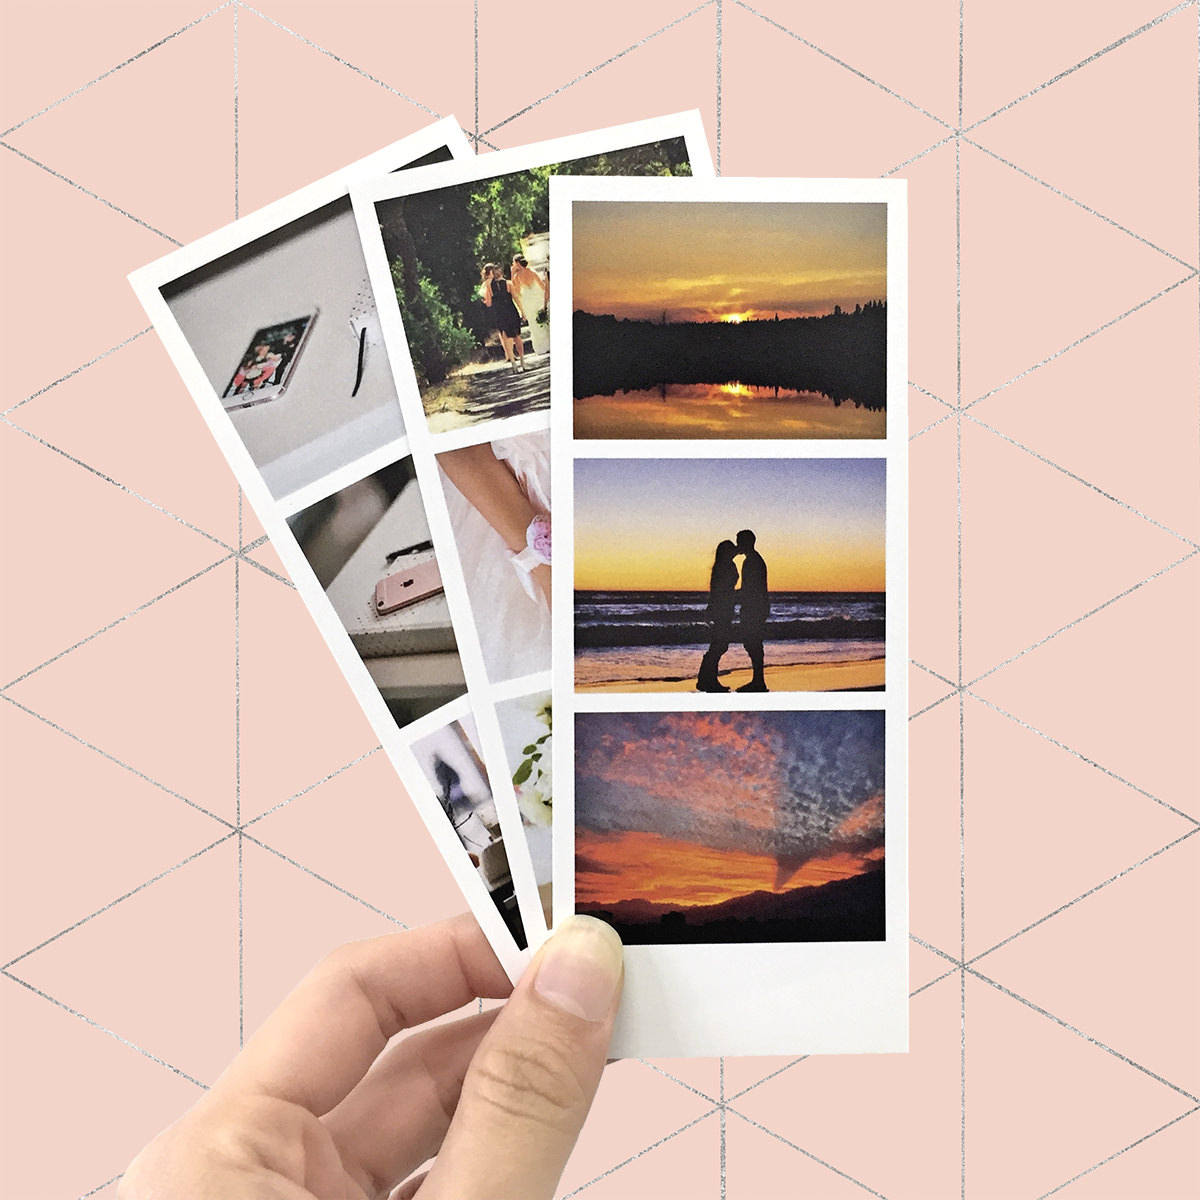 Preview of Photostrips (3 in 1)